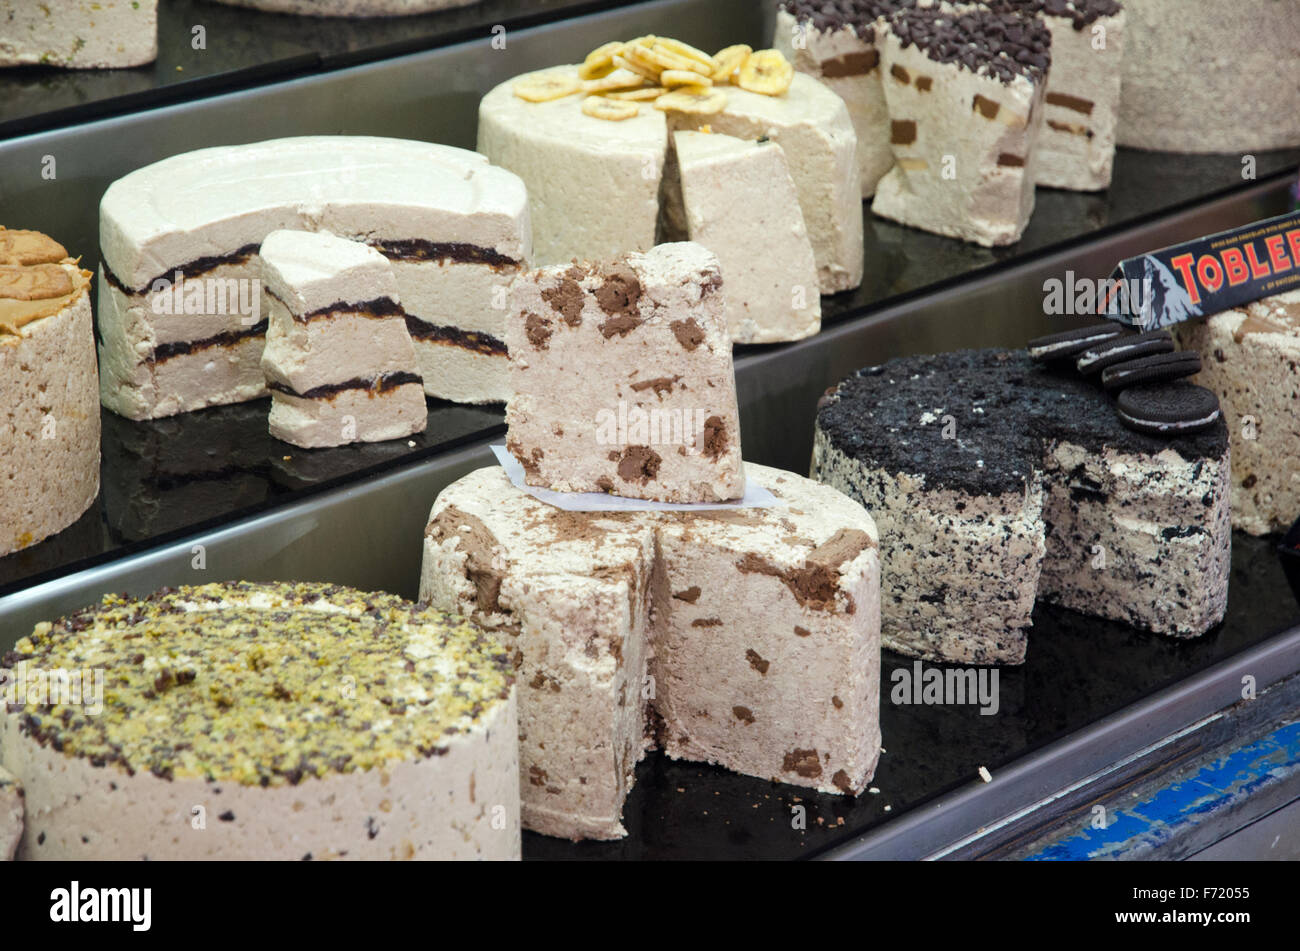 Confections stand at Mahane Yehuda Market, Jerusalem - Stock Image